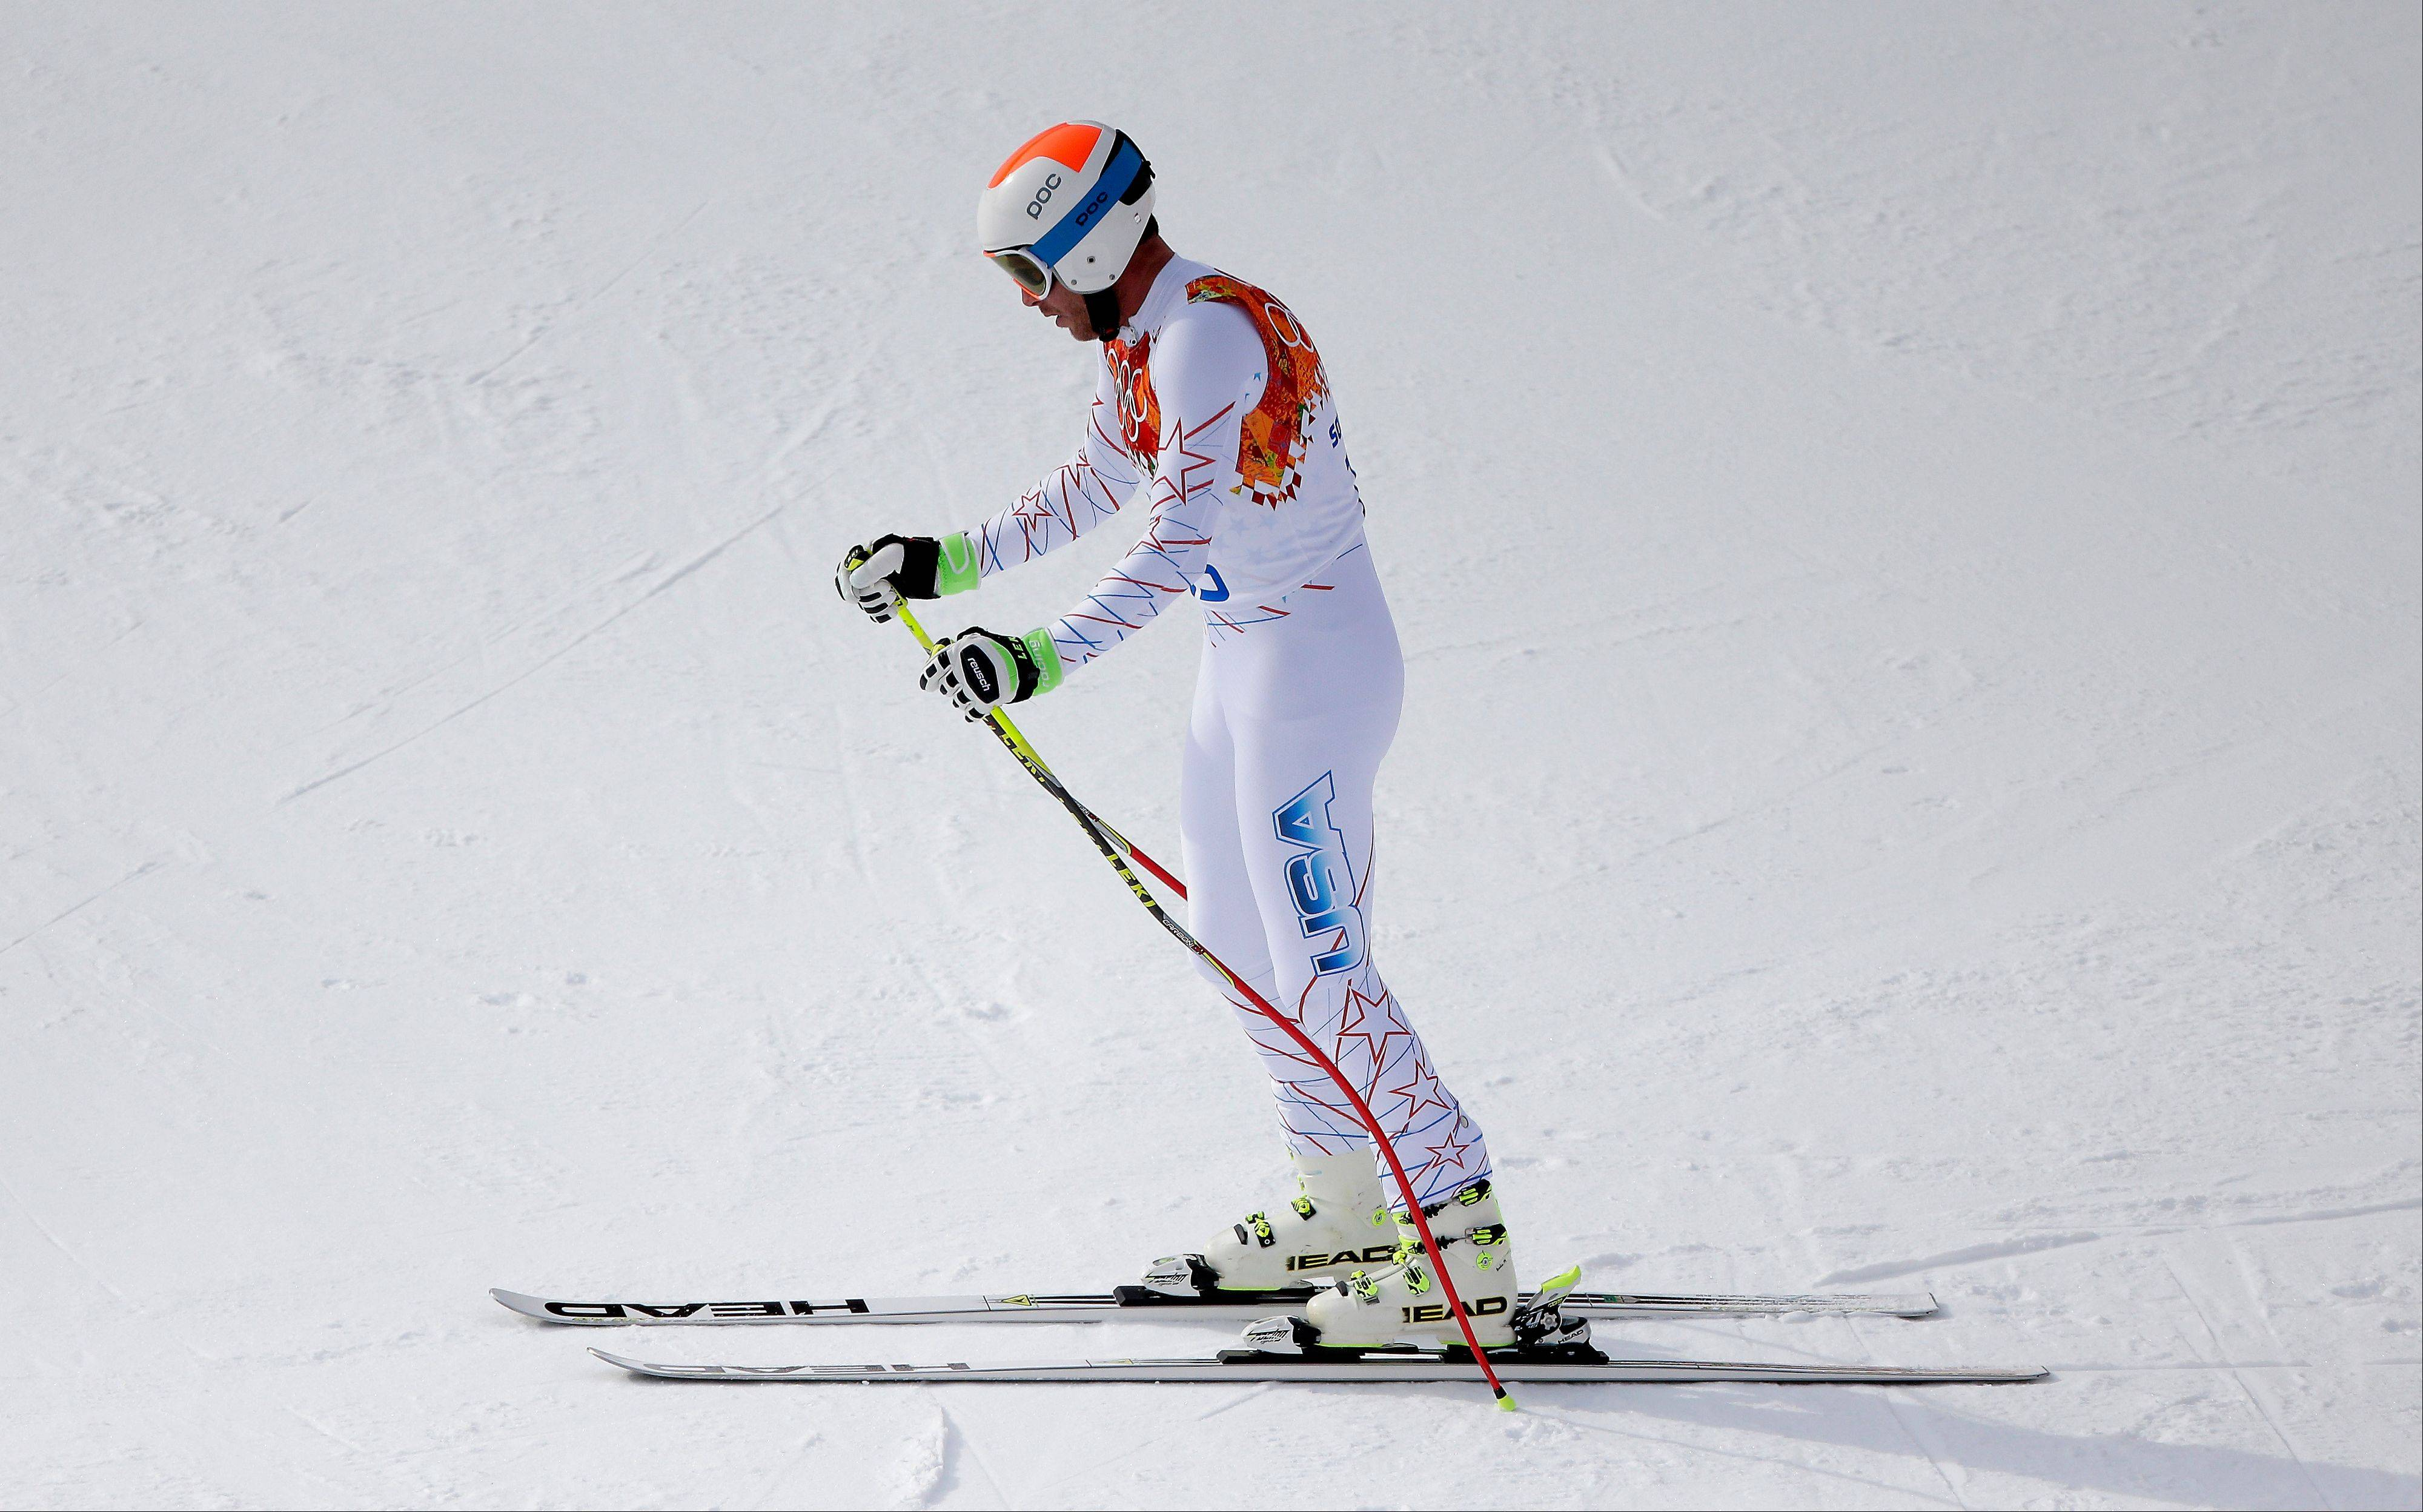 United States skier Bode Miller pauses Sunday before leaving the course after his run in the men's downhill event at the 2014 Winter Olympics in Krasnaya Polyana, Russia.